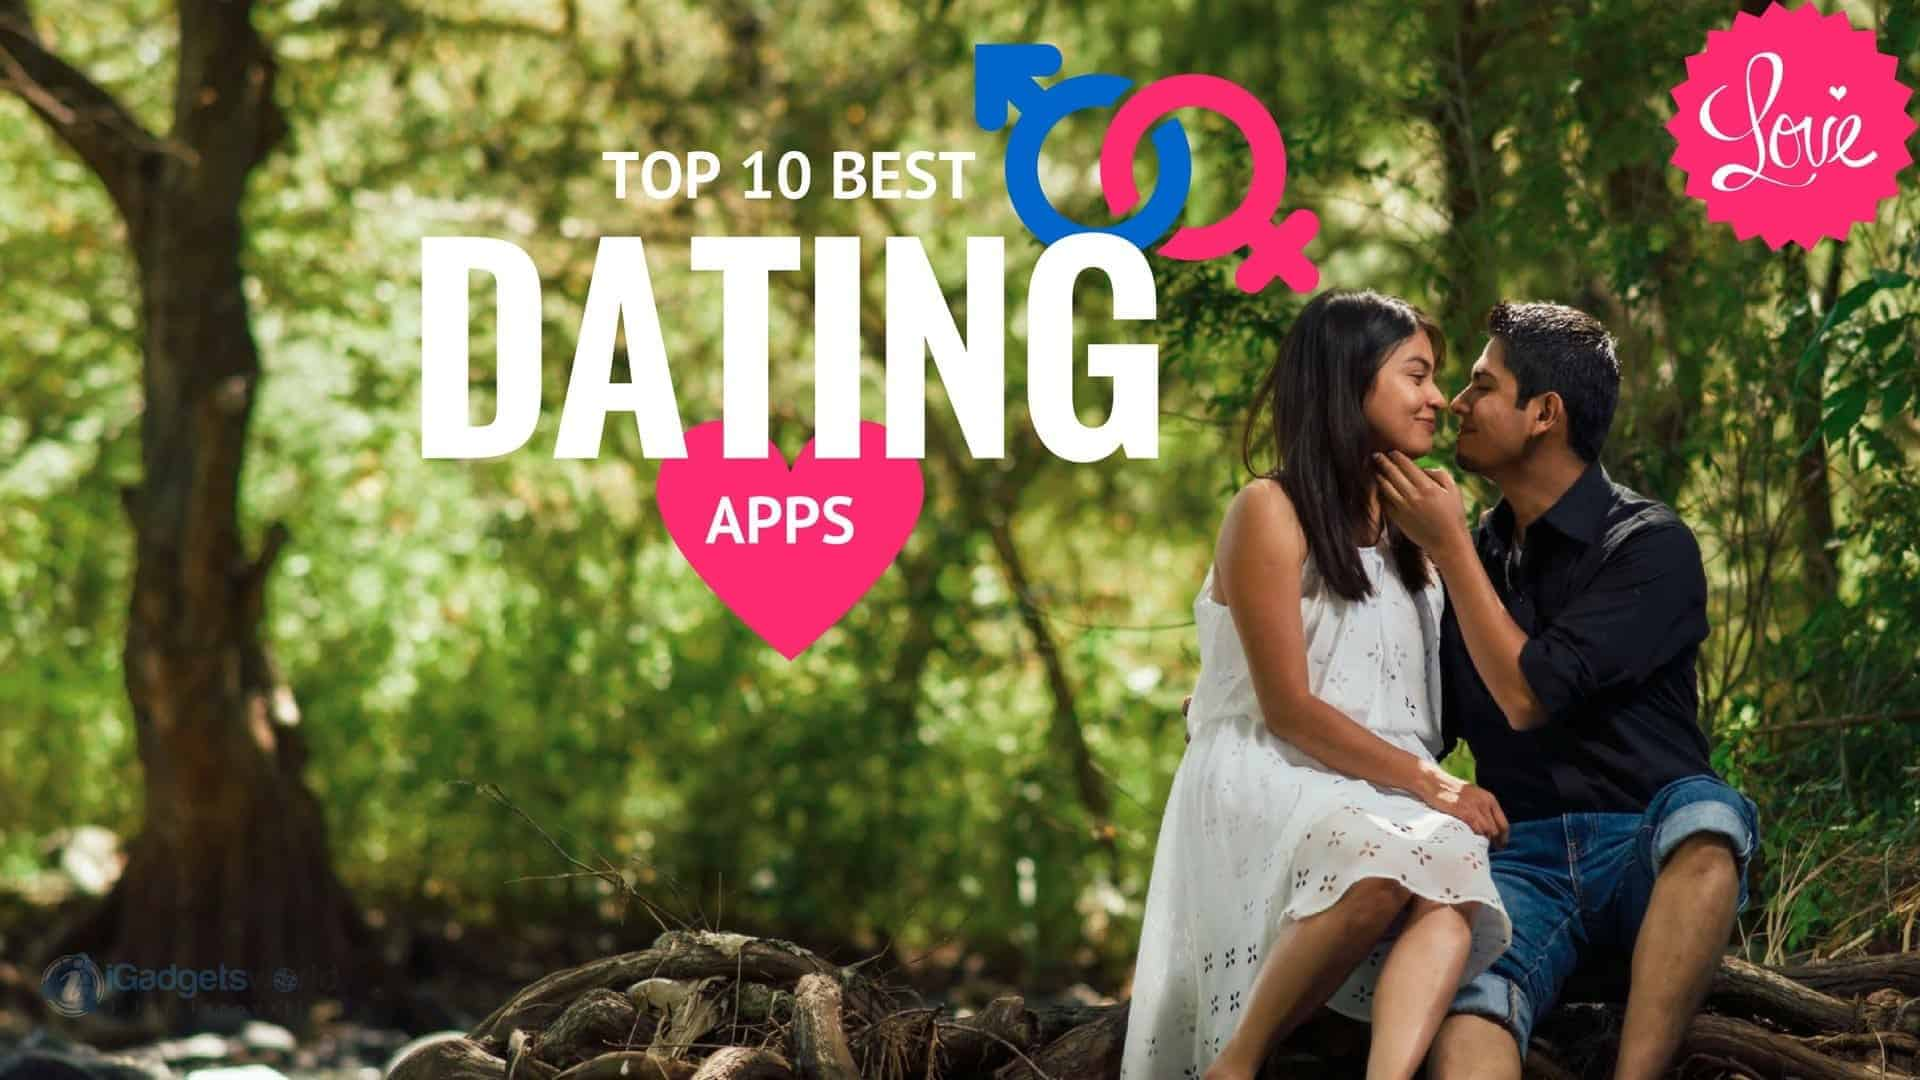 Best dating apps in dubai